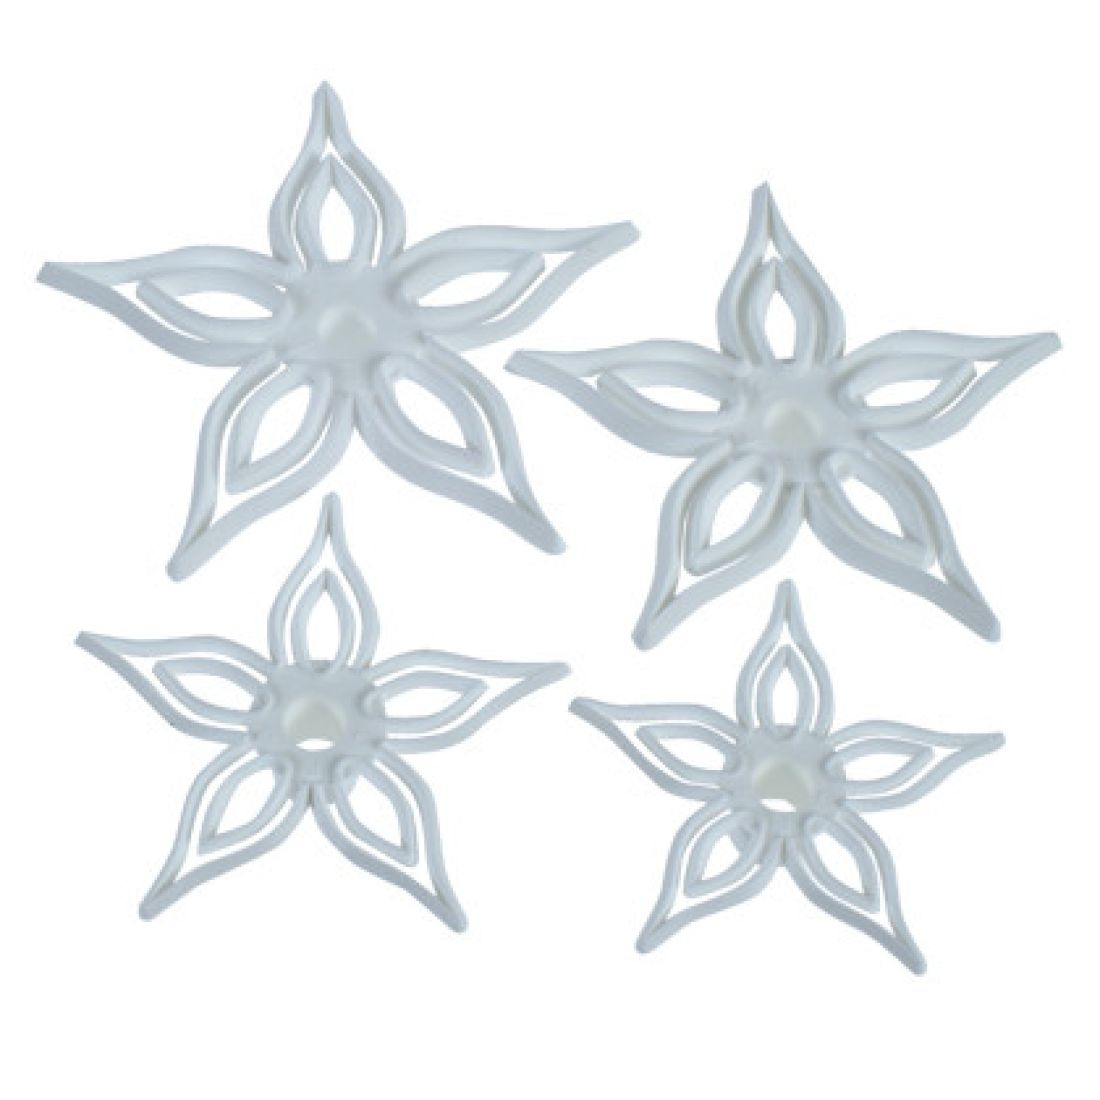 Orchard Products Cutter Lace Flower Cutter Set | Squires Kitchen Shop